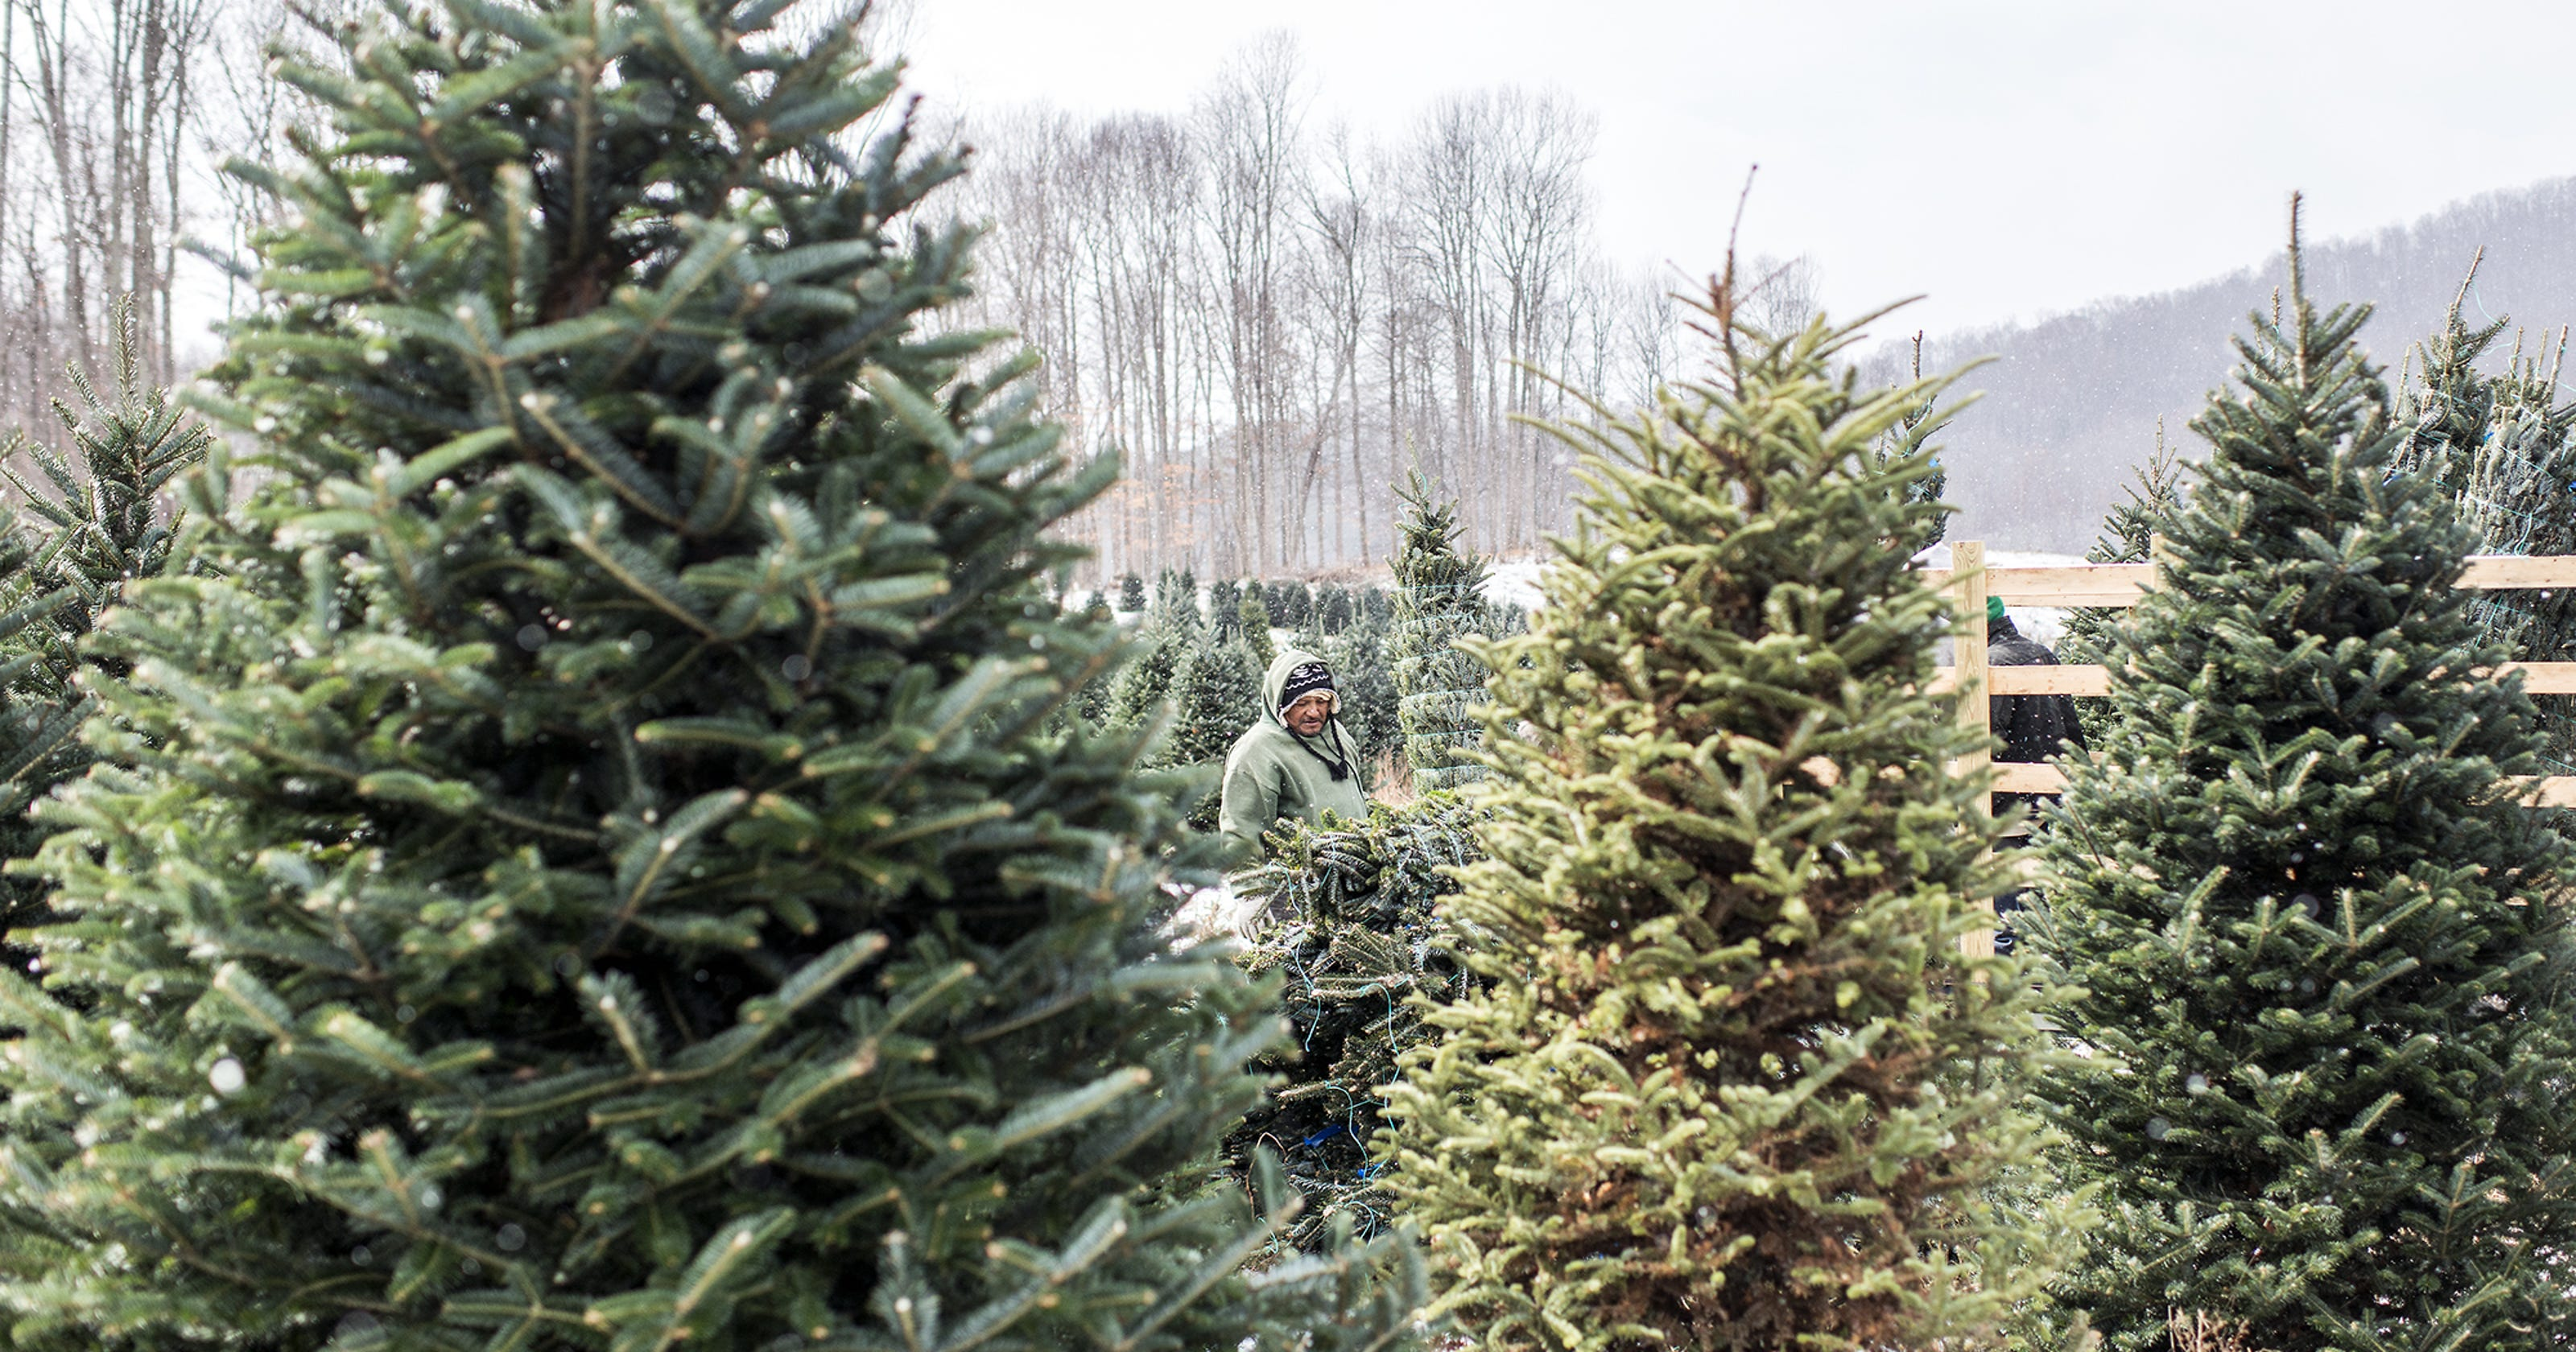 Is There A Christmas Tree Shortage In Western North Carolina?